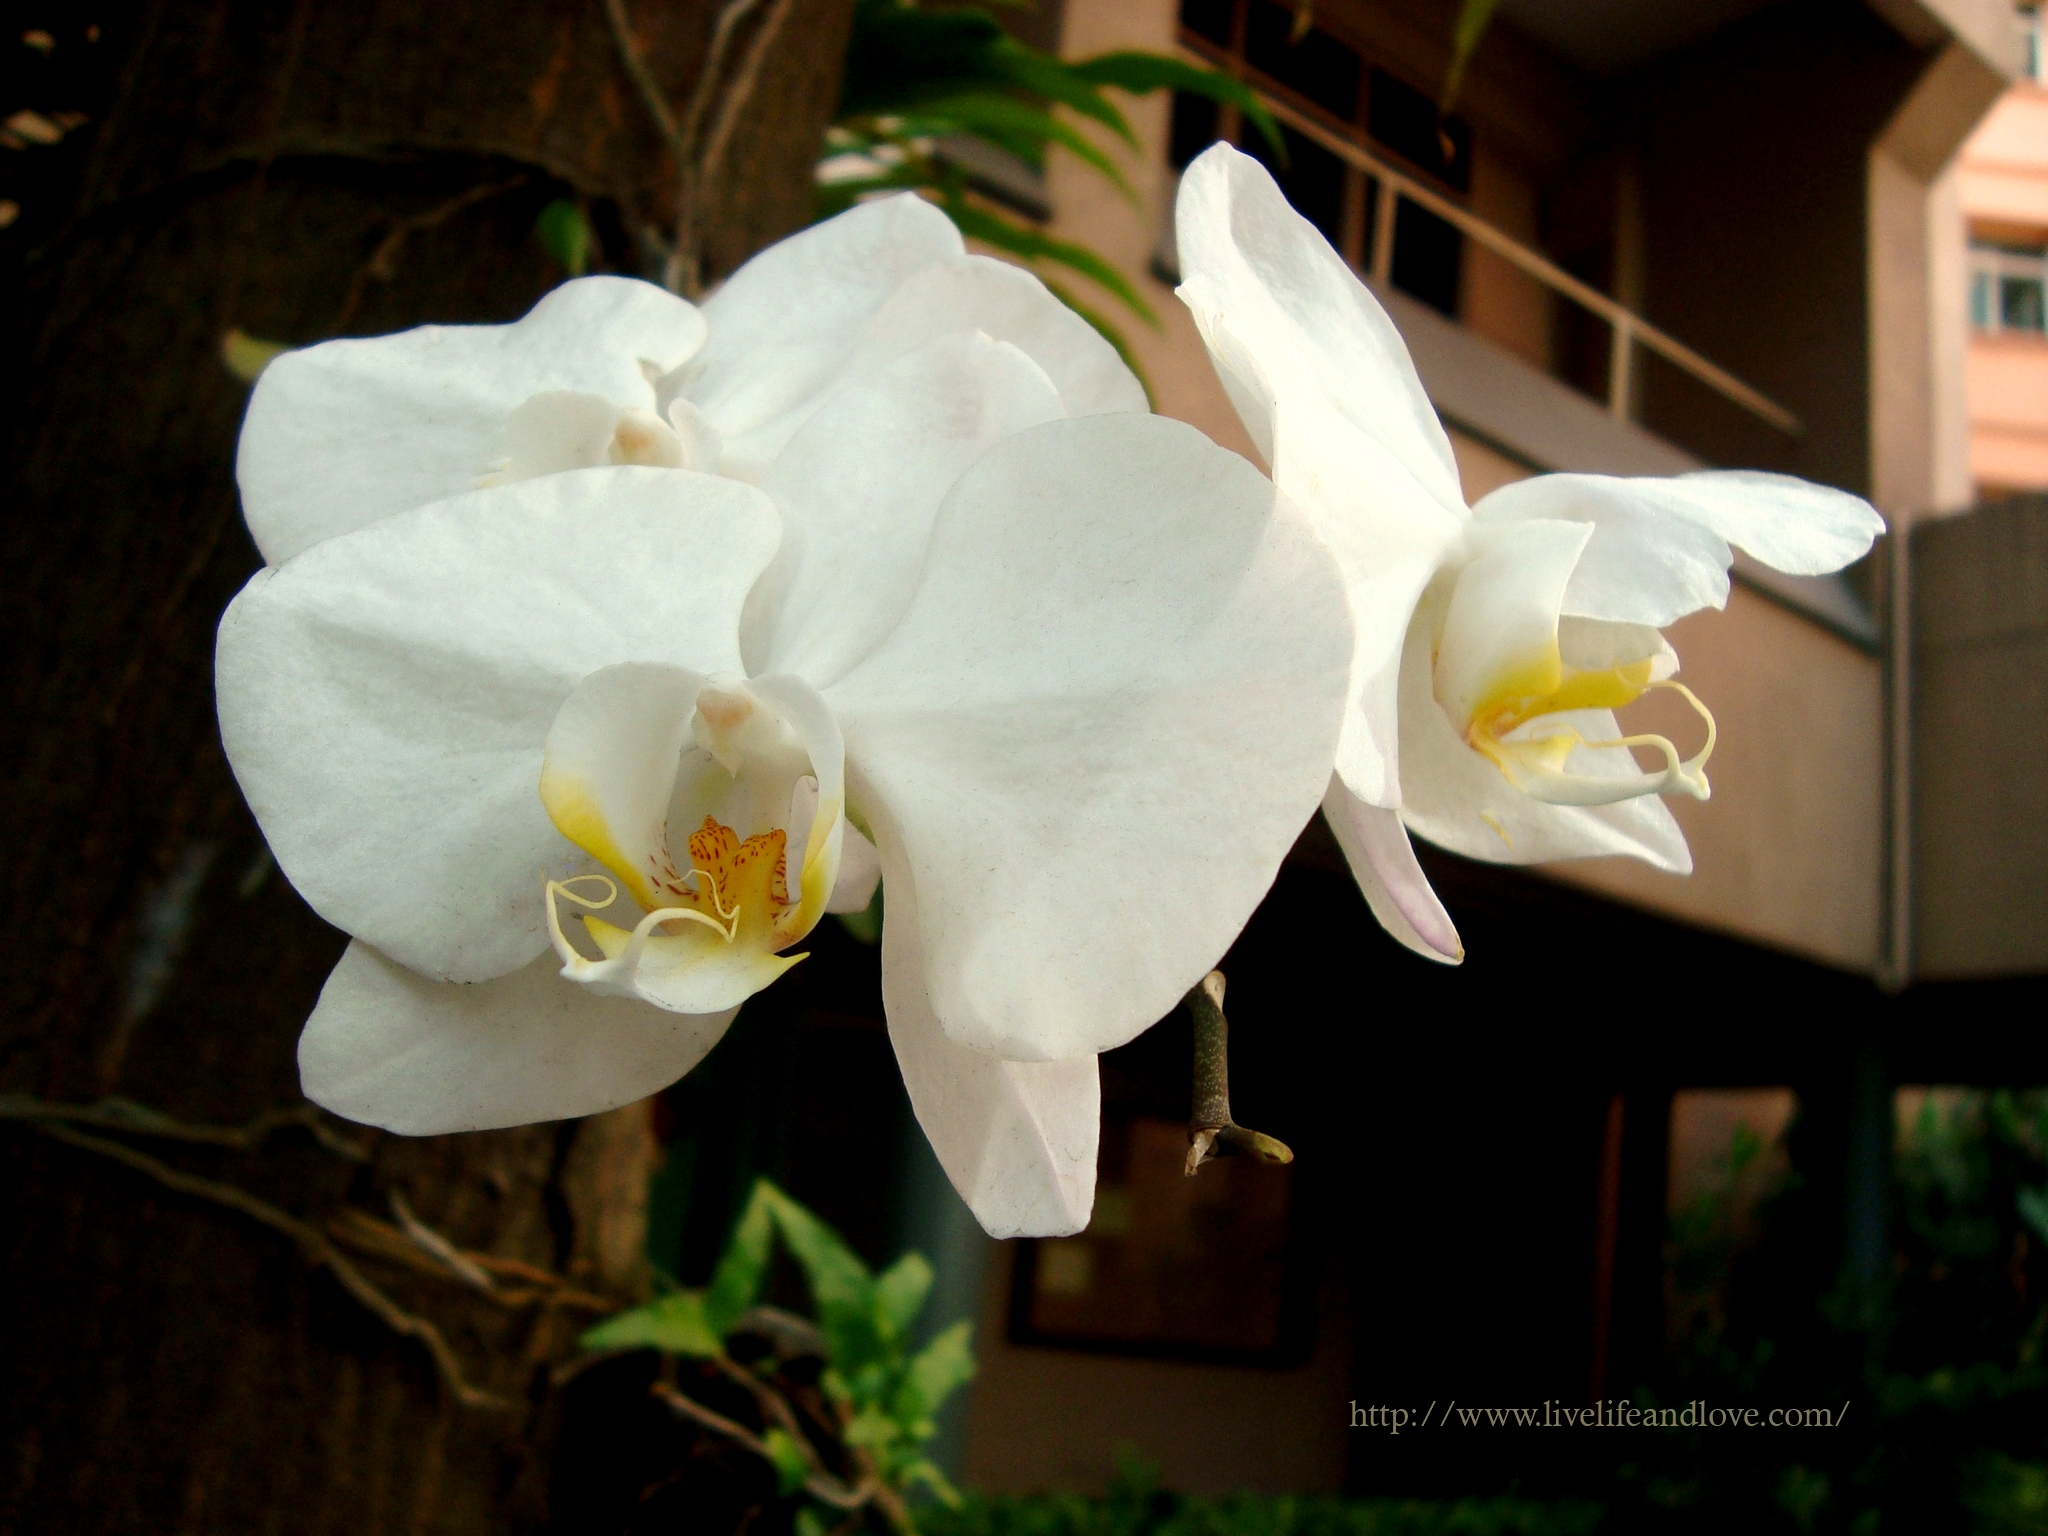 Popular Orchids Live Life And Love